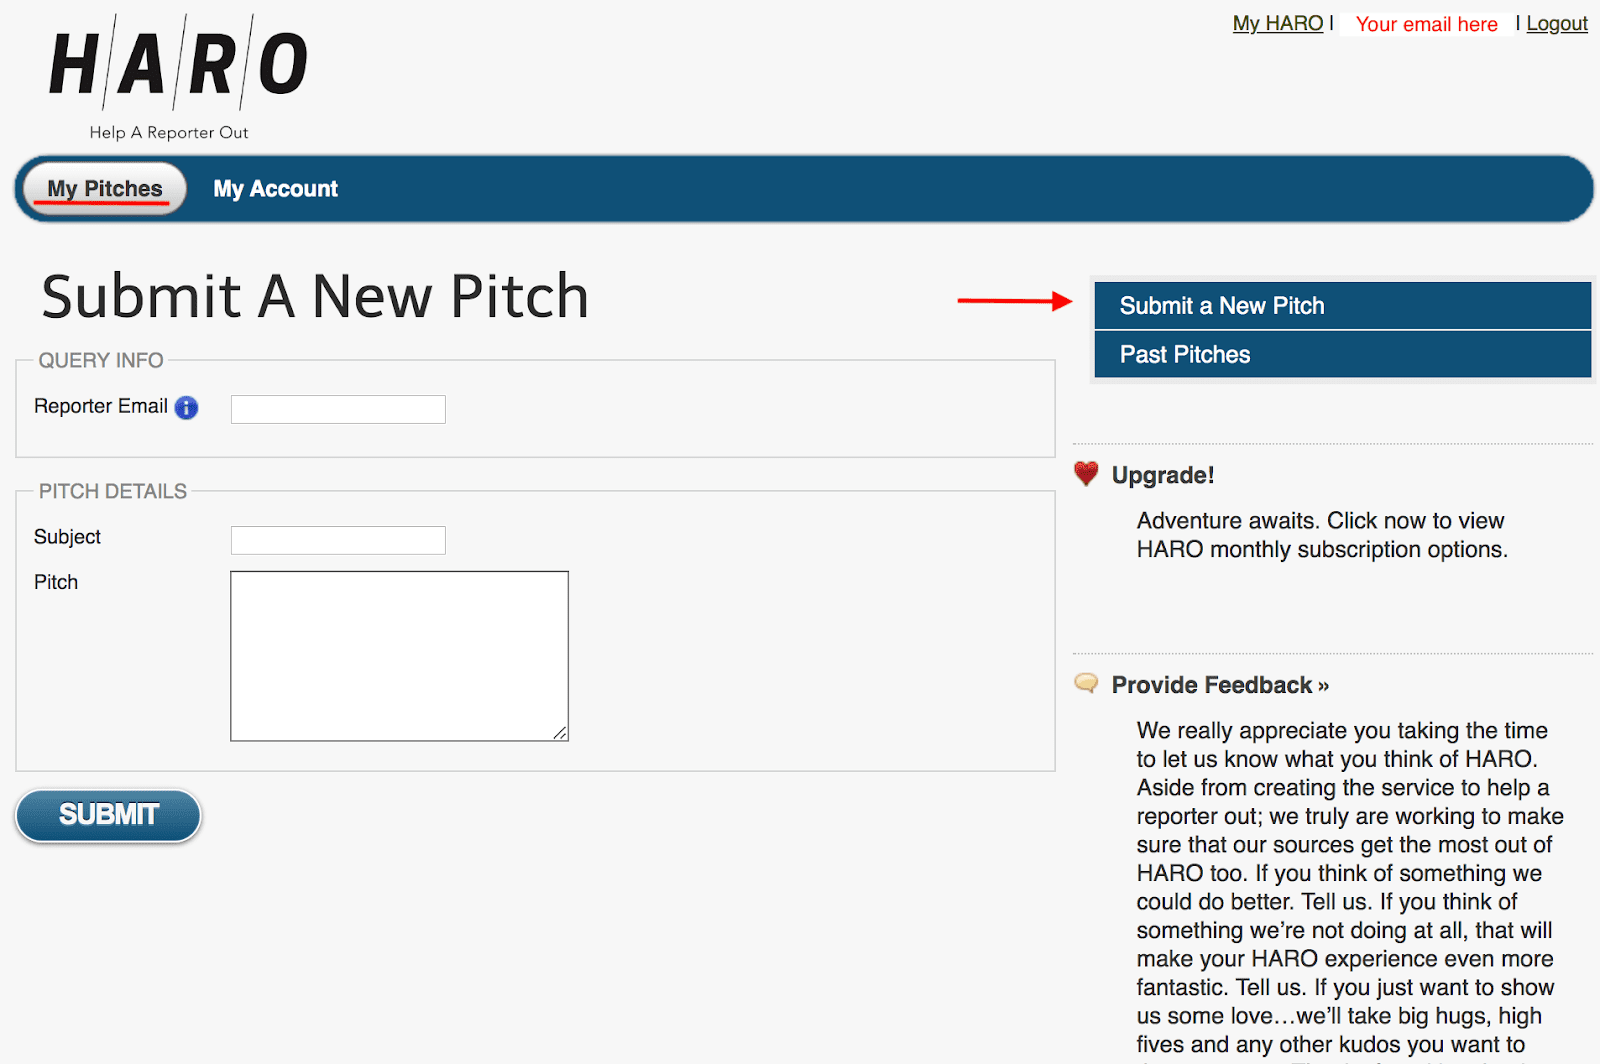 Submit A New Pitch